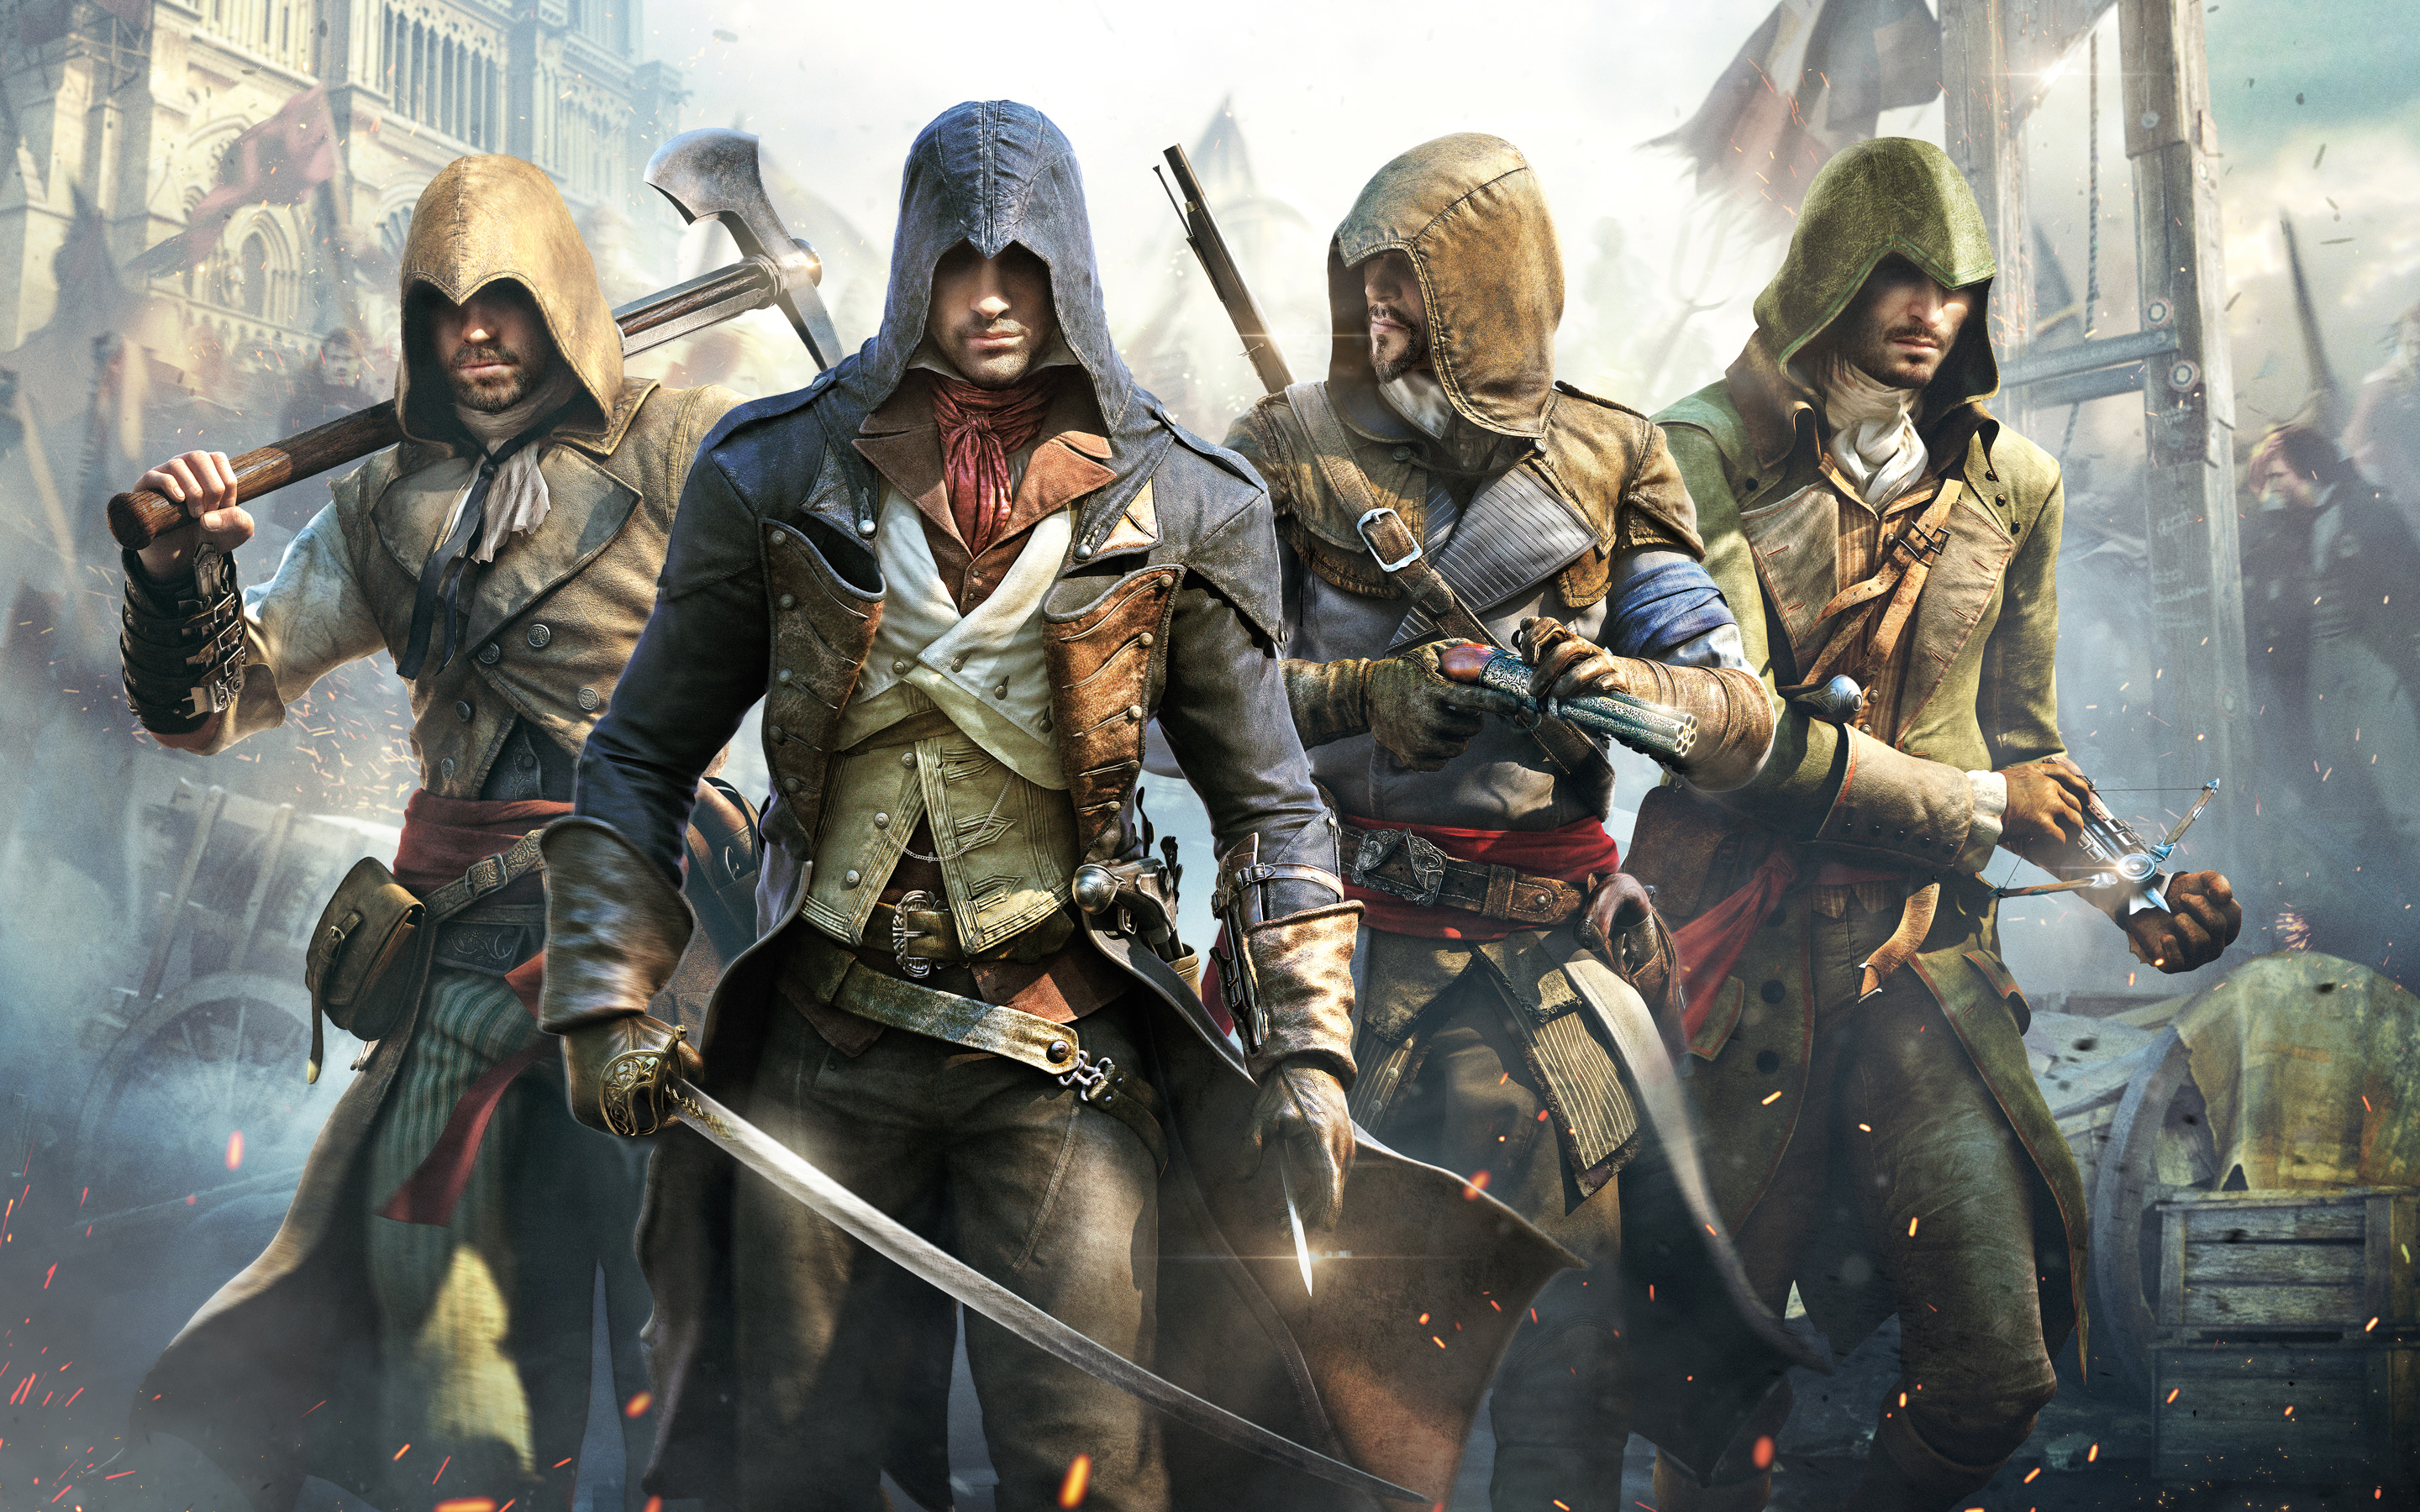 Assassins Creed Unity Poster Wallpapers HD Wallpapers 2880x1800